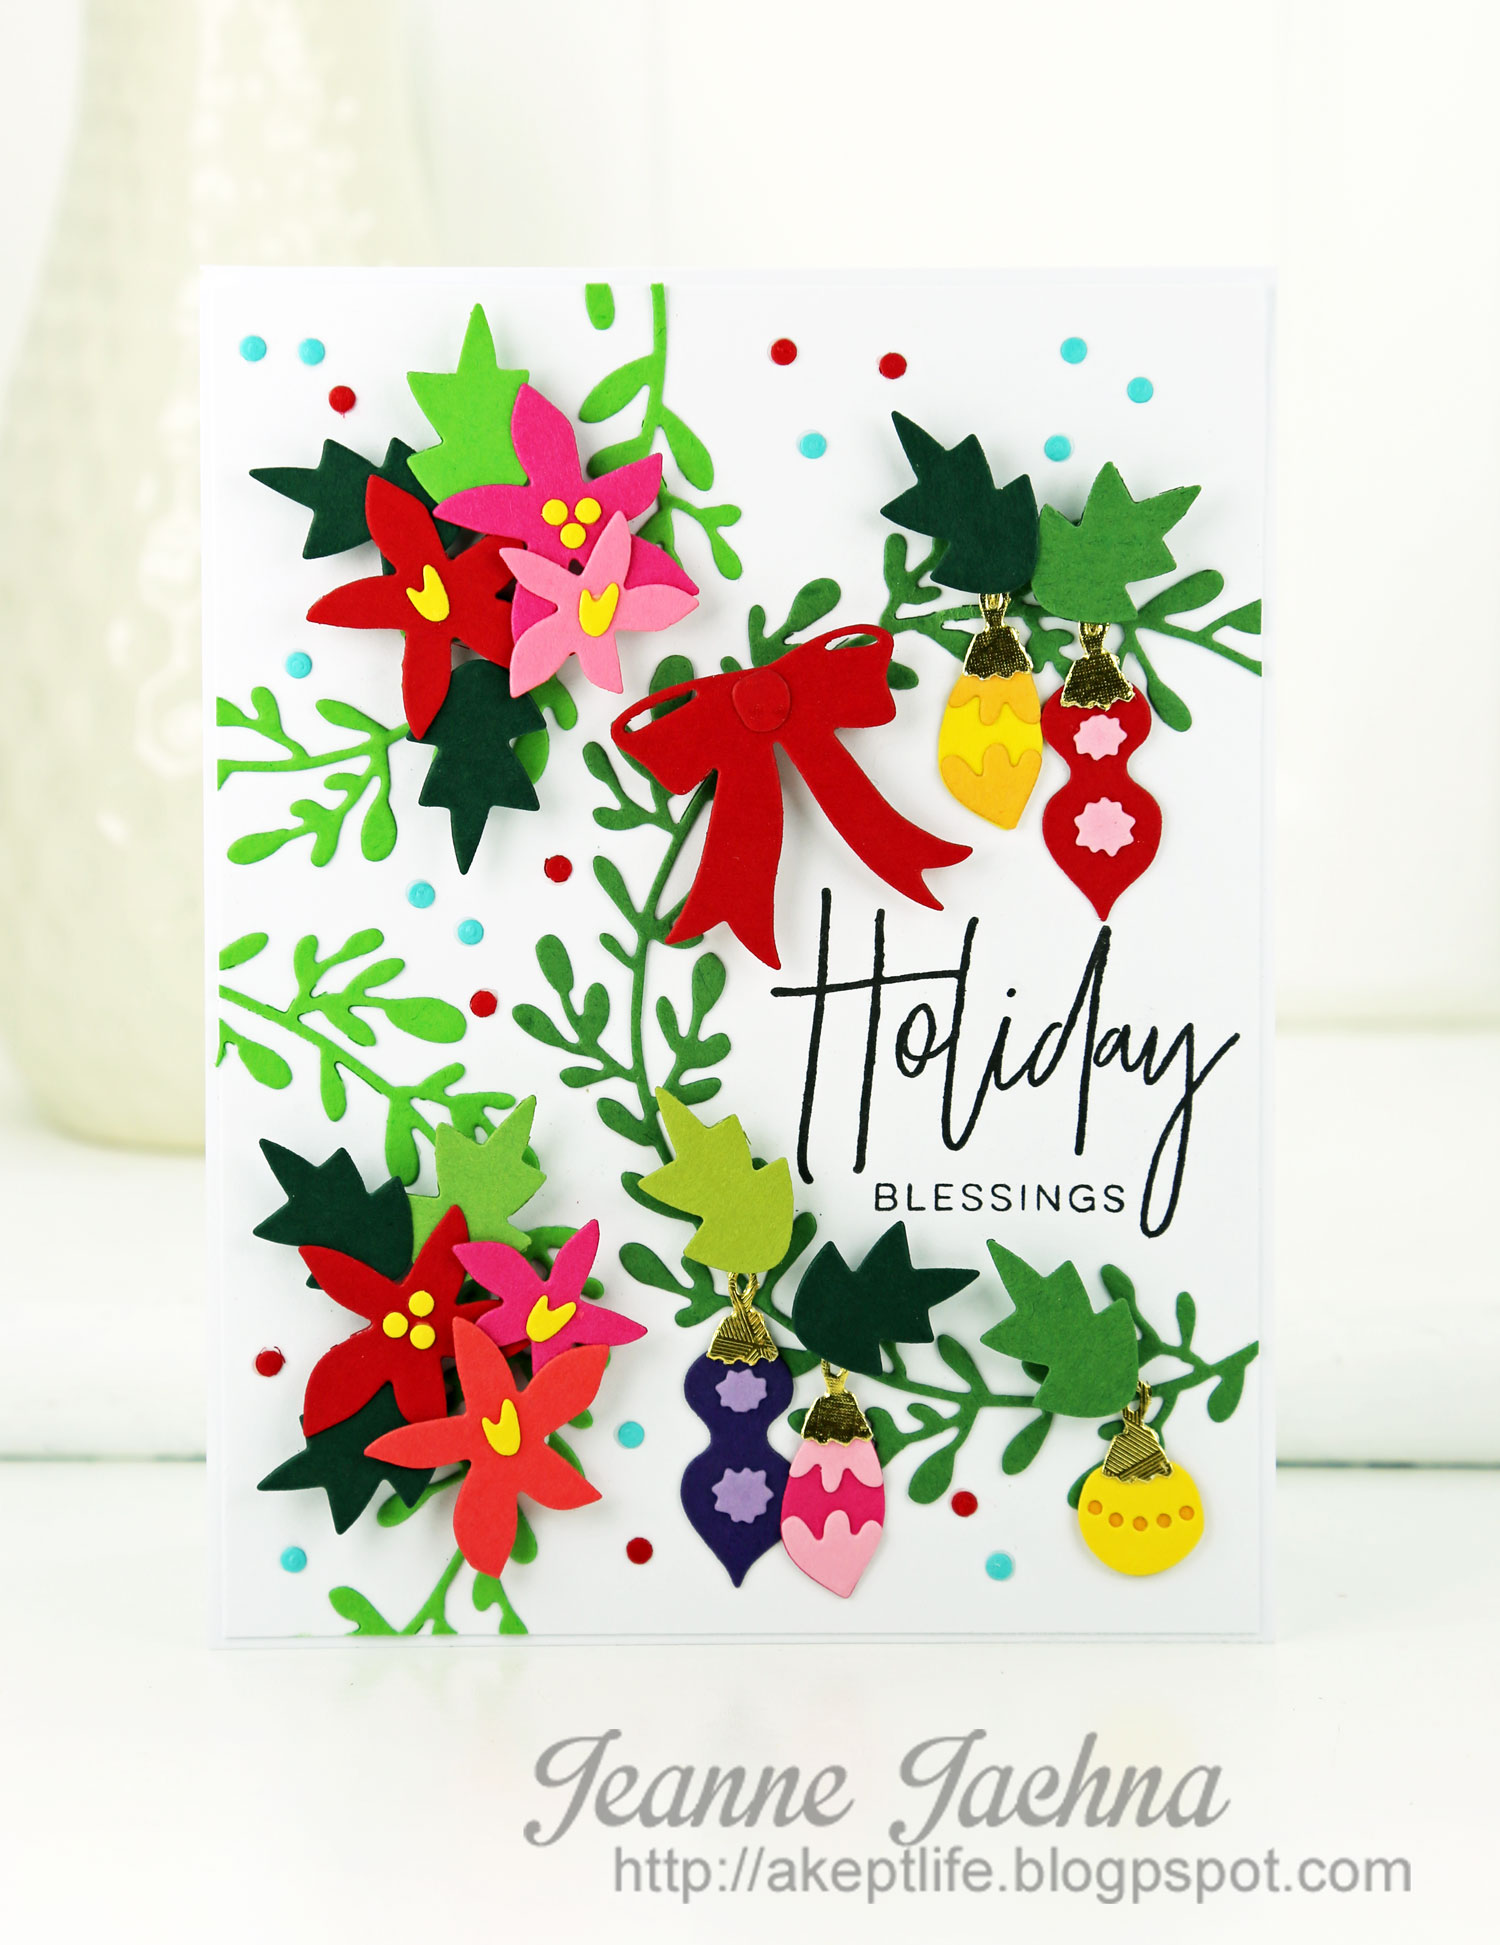 Holiday Blessings Decorated Seasonal Wreath Card by Jeanne J. // rightathomeshop.com/blog